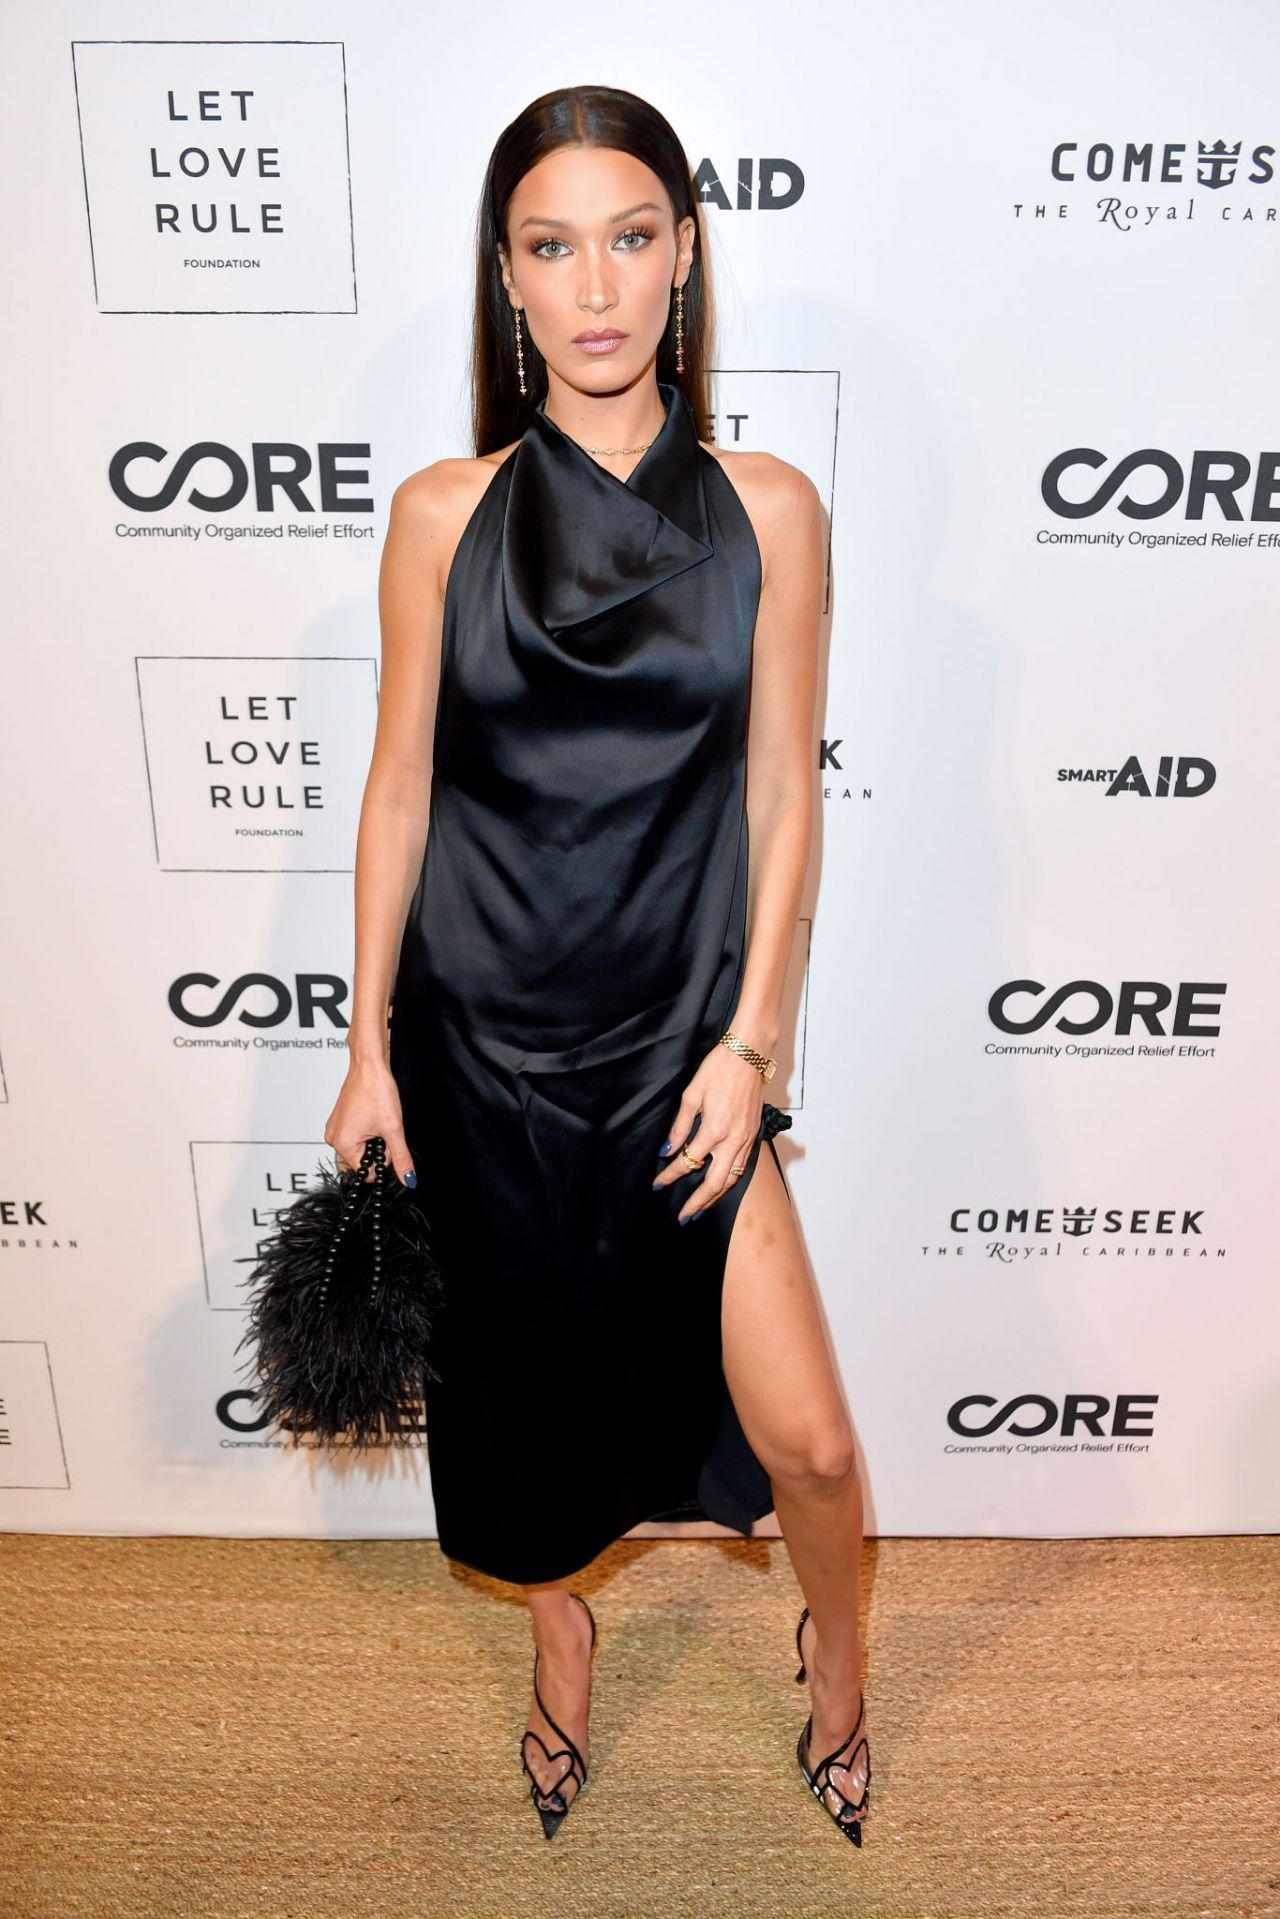 Bella Hadid - Core x Let Love Rule Benefit at Art Basel in Miami 12/05/2019.